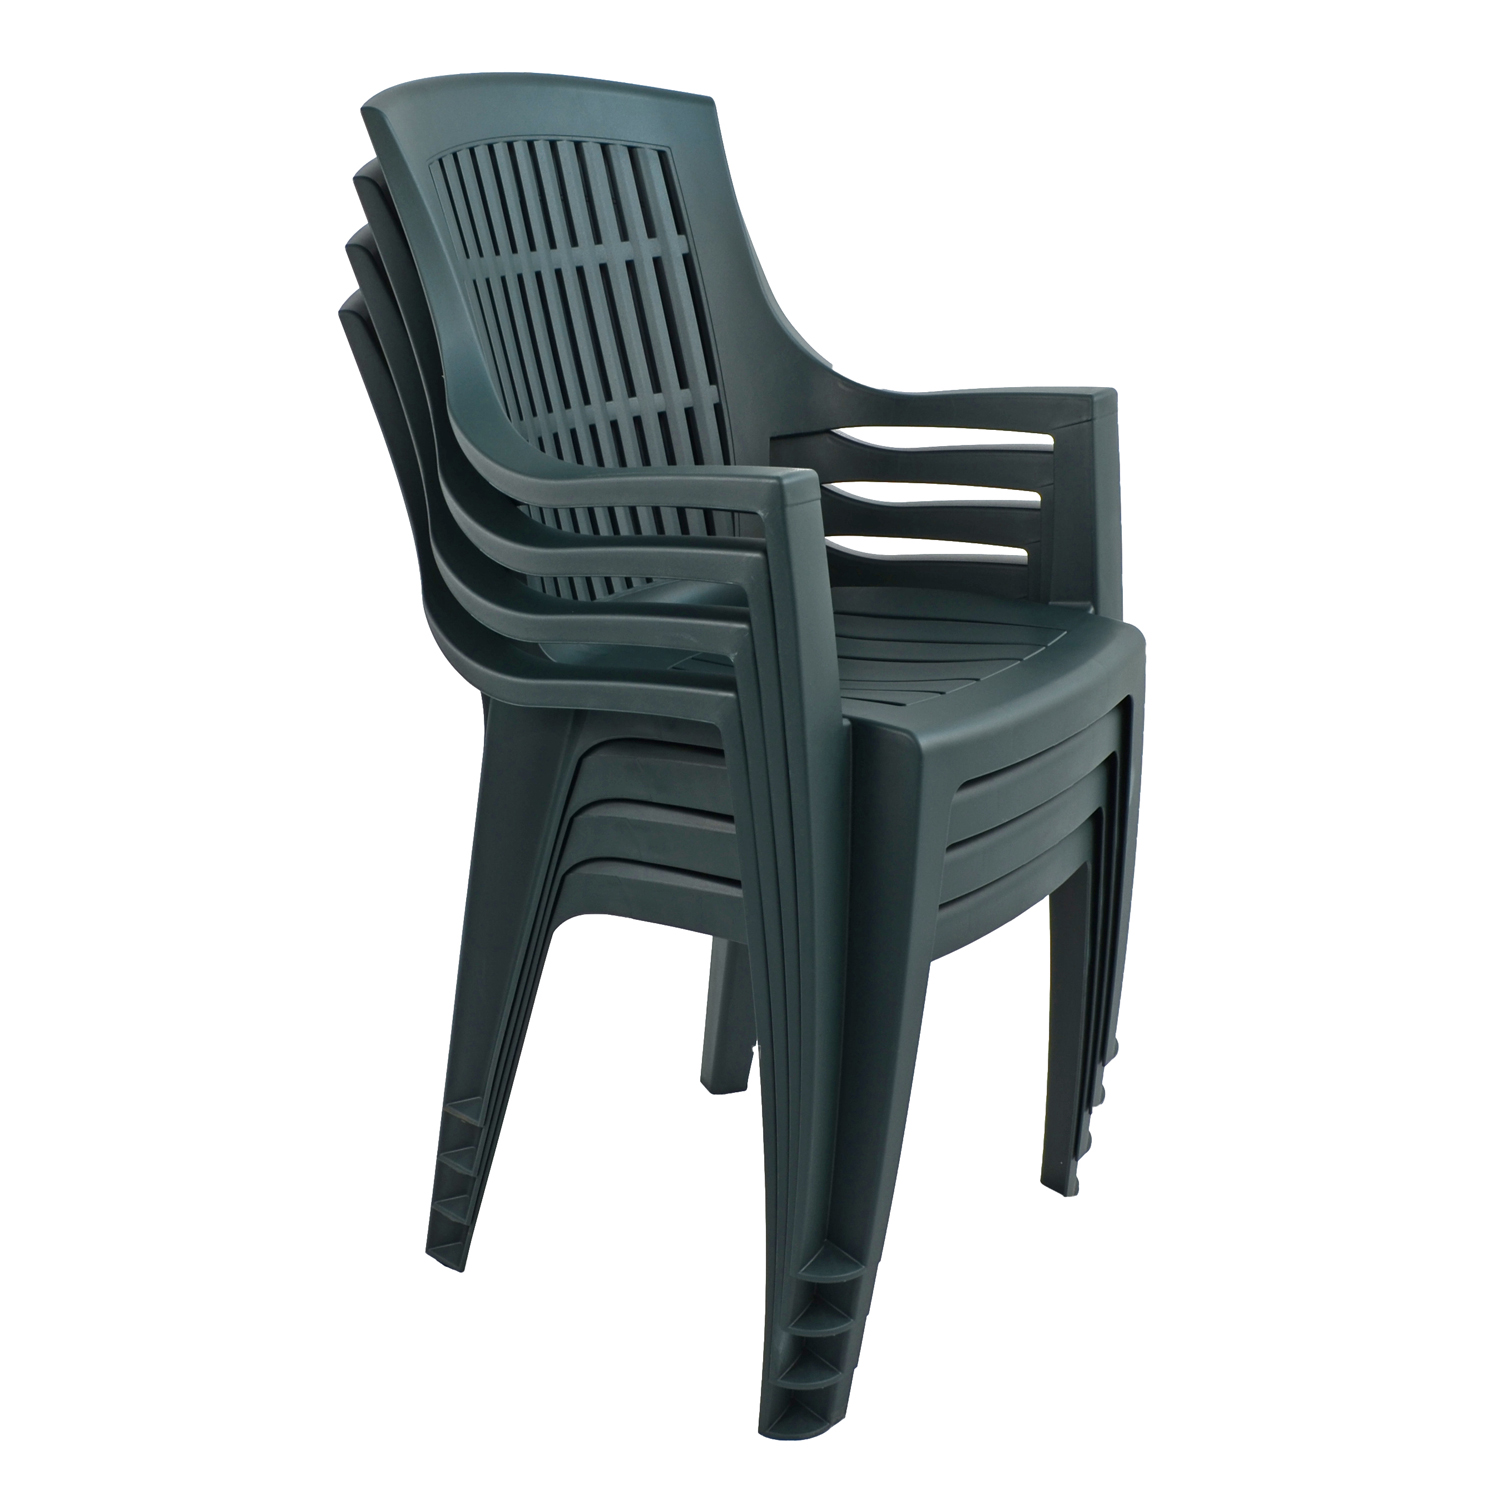 PARMA STACK CHAIR GREEN PACK OF 4